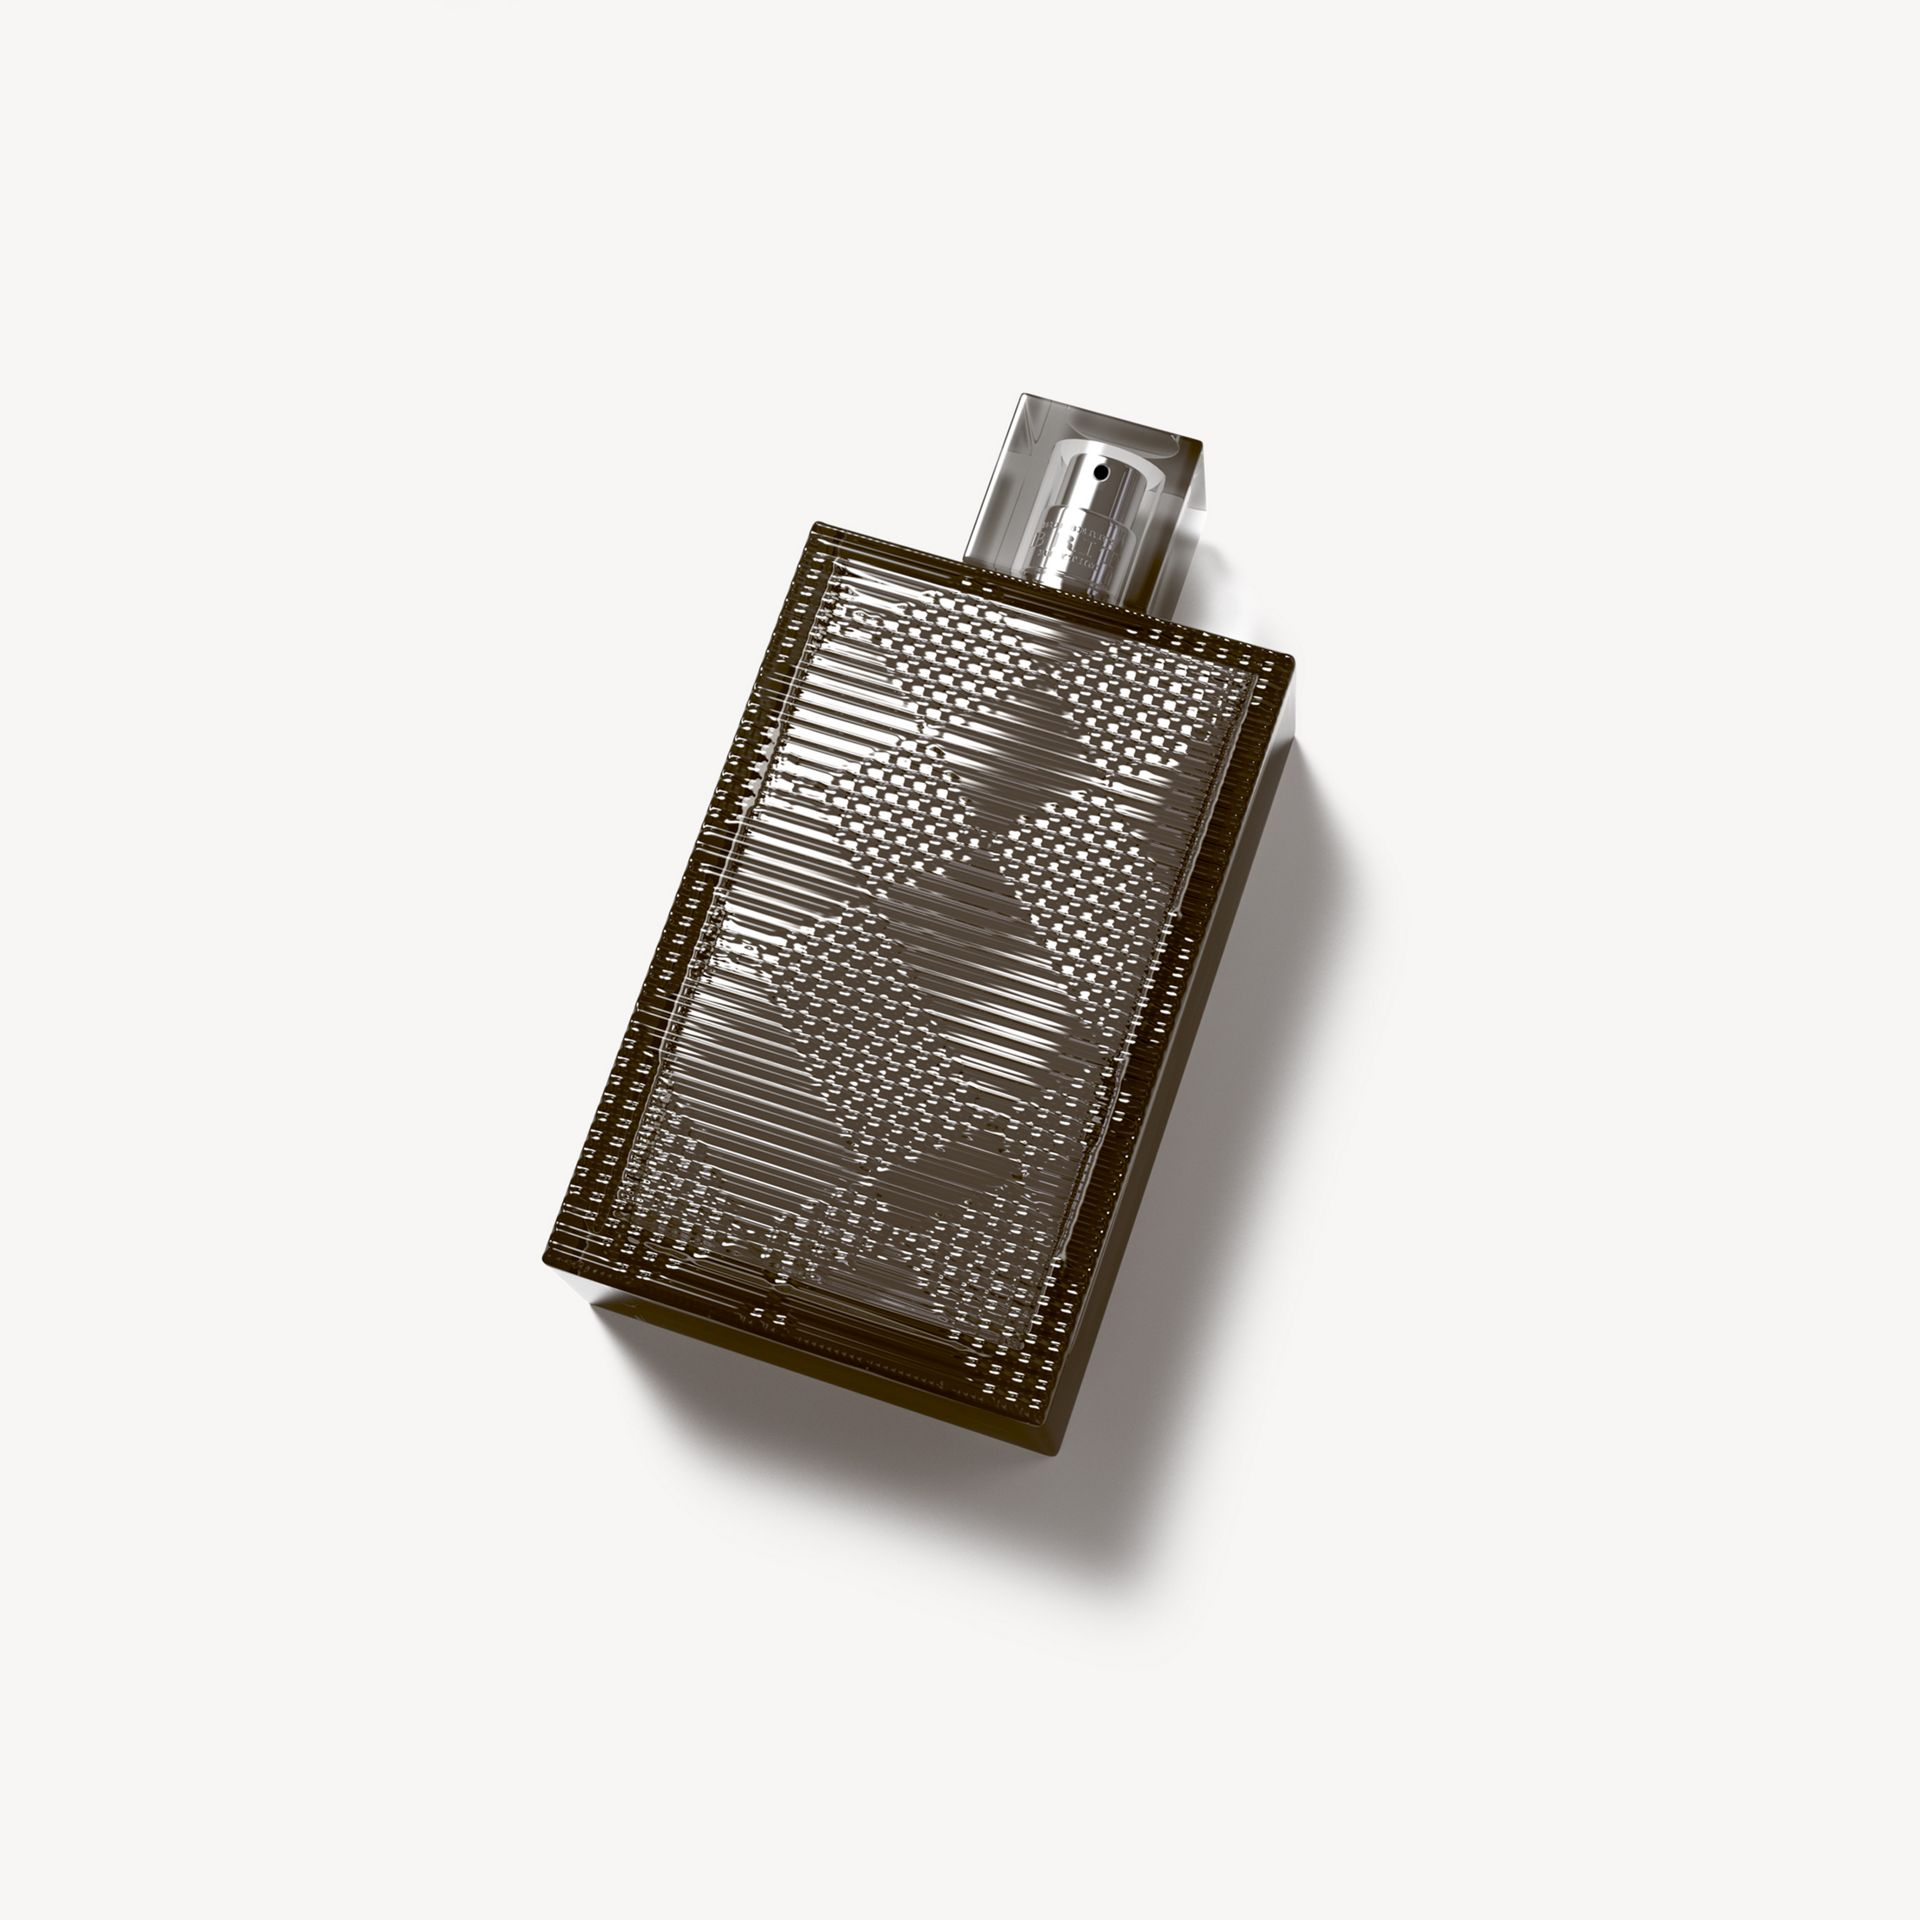 Burberry Brit Rhythm Intense Eau de Toilette 90 ml - immagine della galleria 1